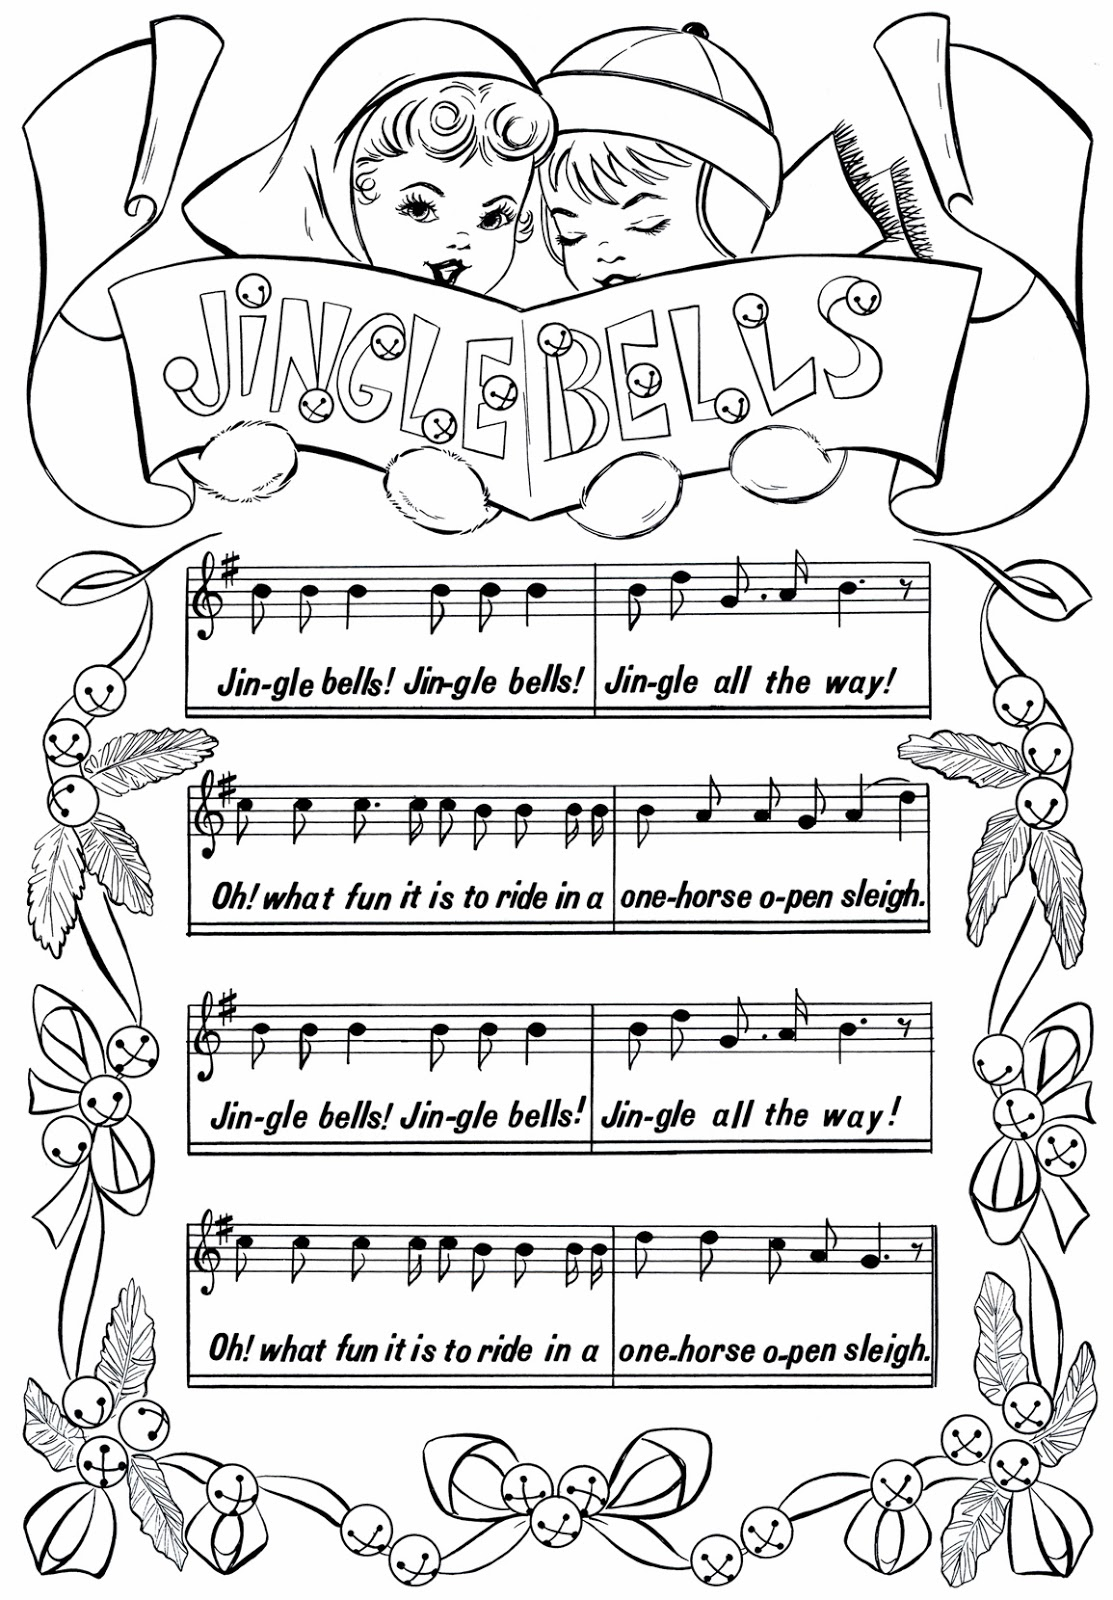 The Storytelling Sub...StoryTeacher: Jingle Bells...lyrics